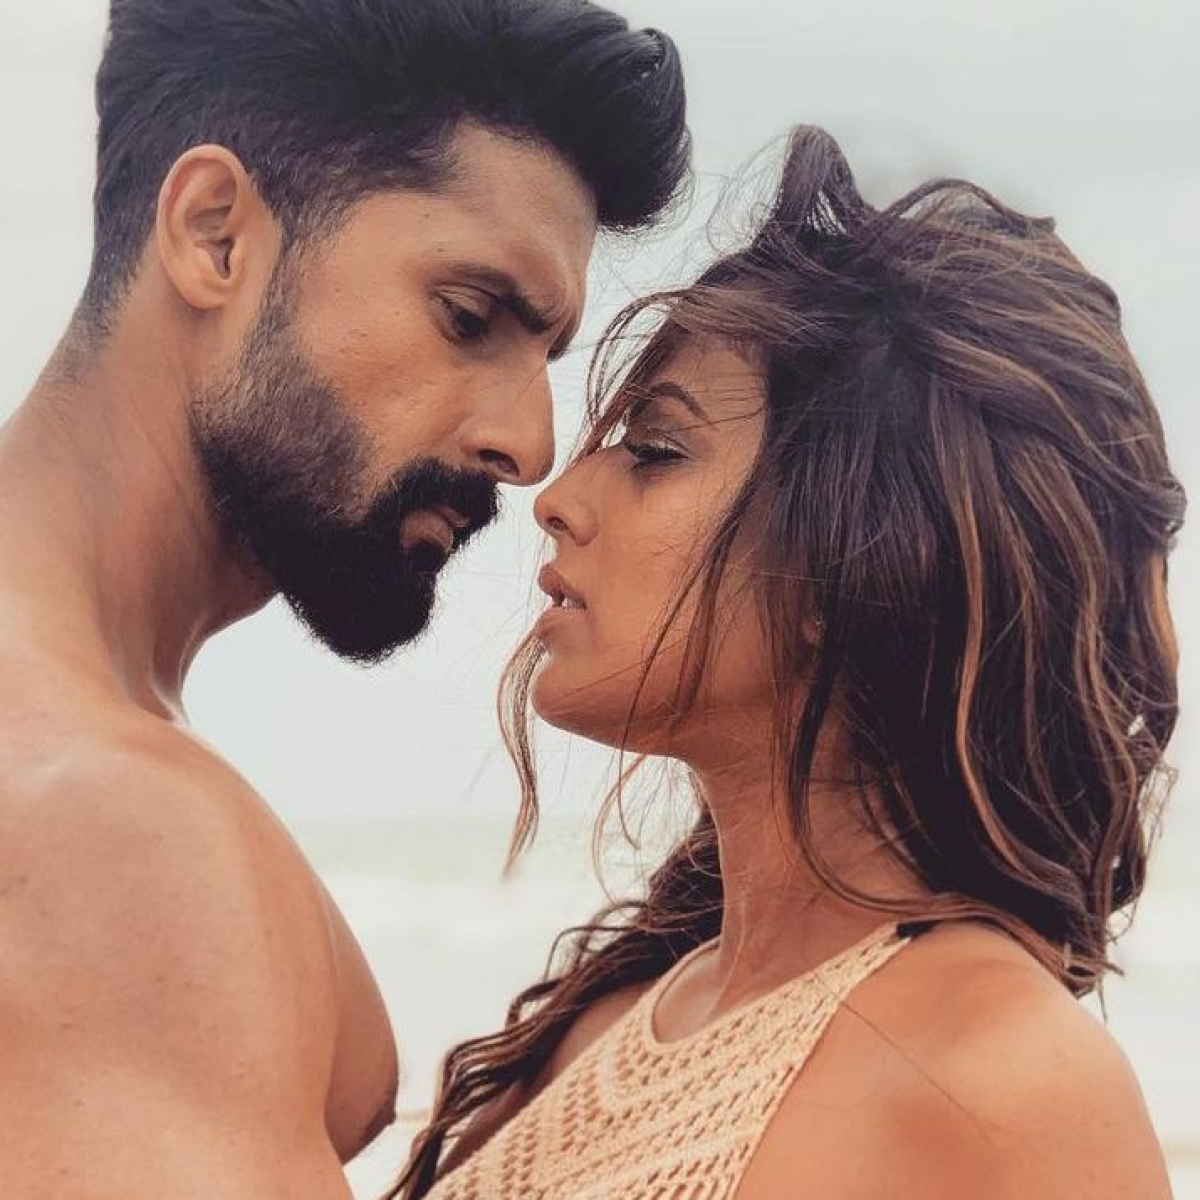 Watch Video: Nia Sharma reveals Ravi Dubey is the 'best kisser'